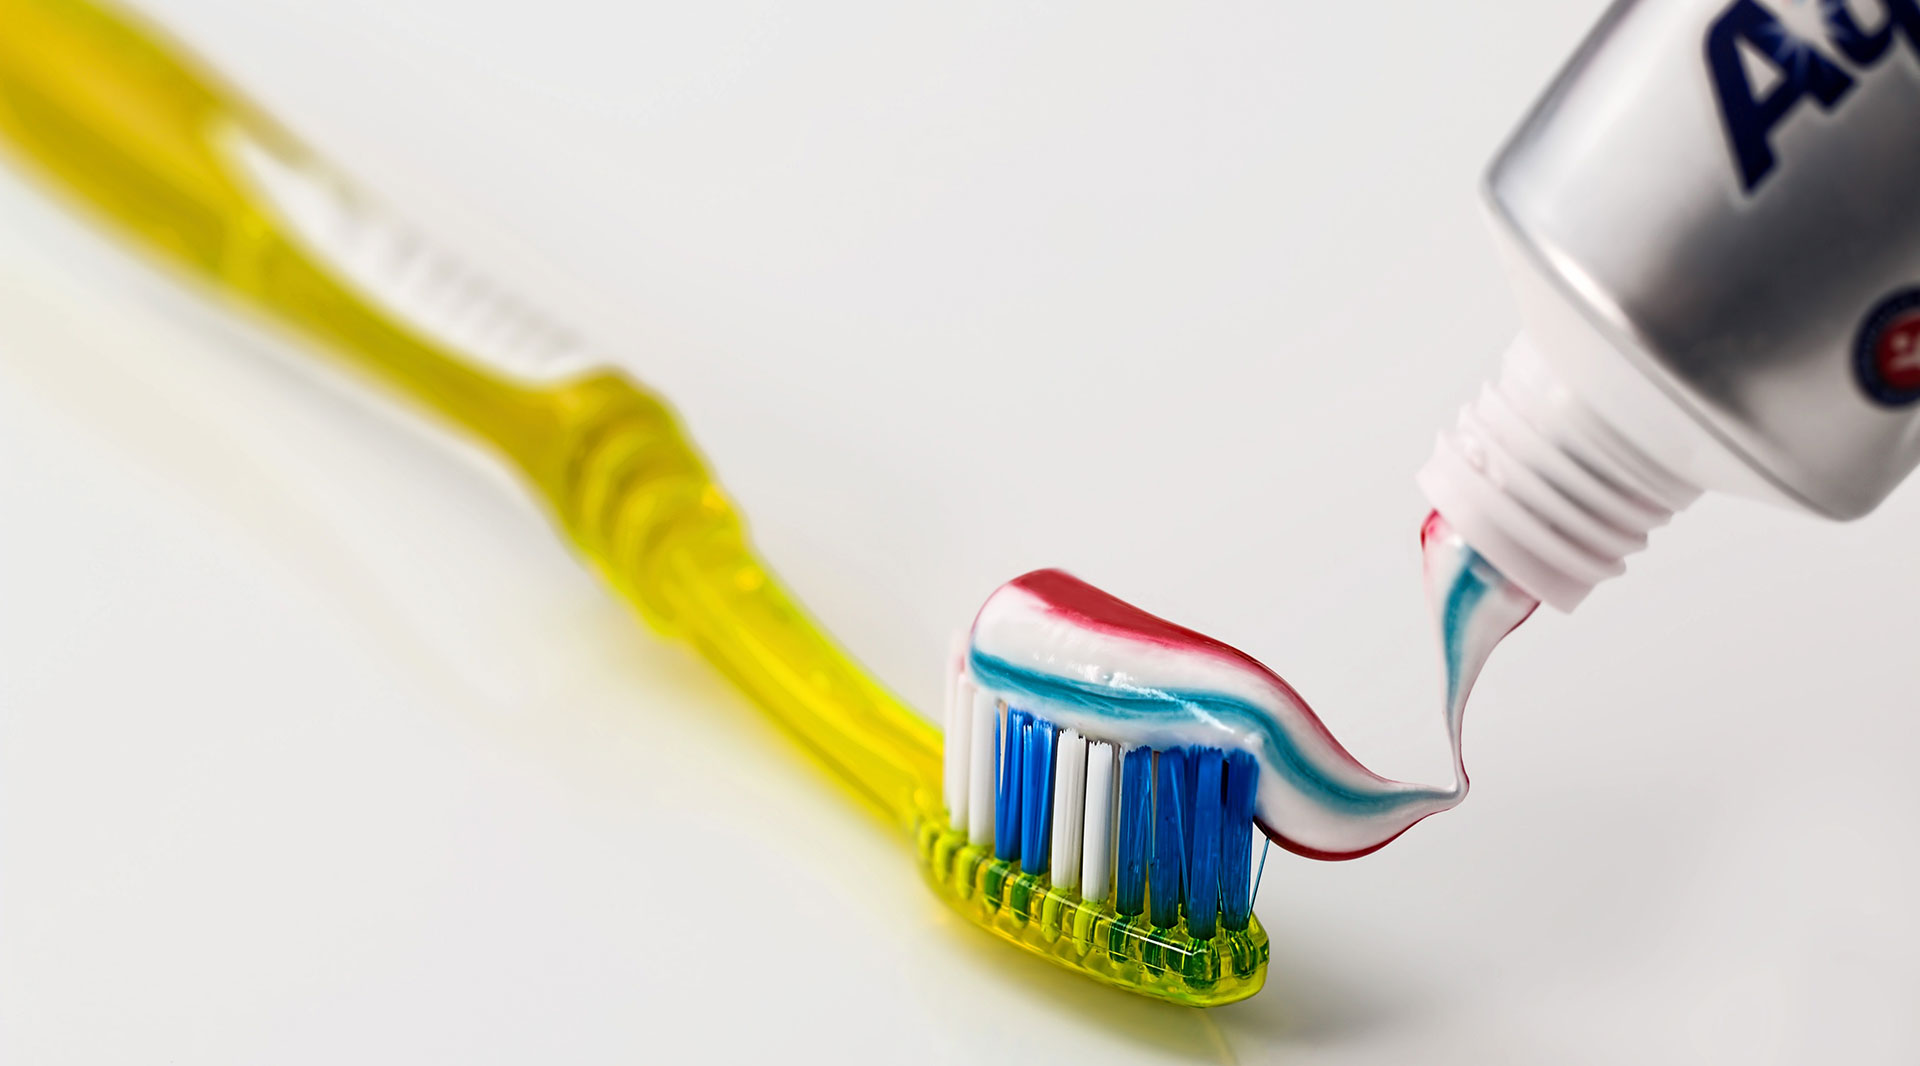 Toothpast & toothbrush